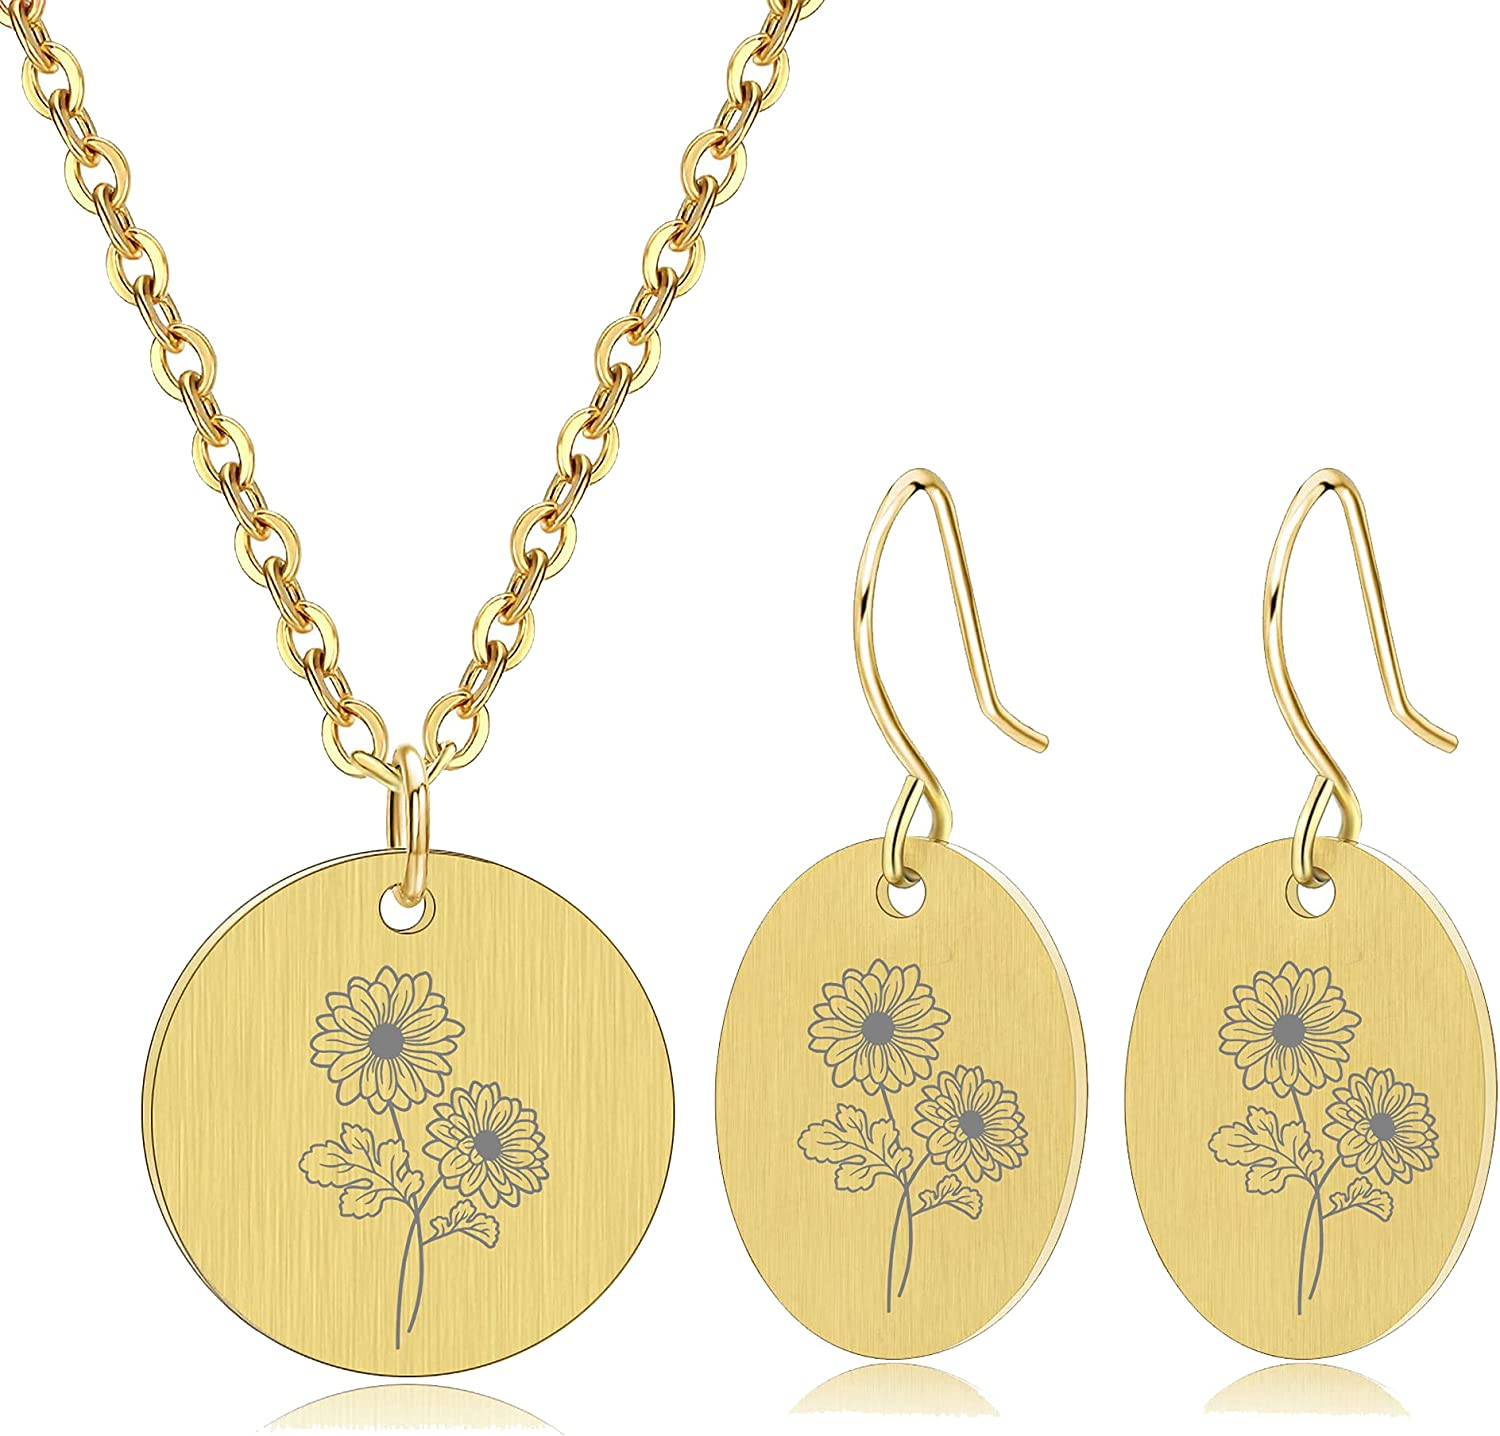 Birth Month Flower Pendant Necklace Earrings Set Coin Pendant Jewelry Set Personalized Gift for Women & Girls Gifts for Her